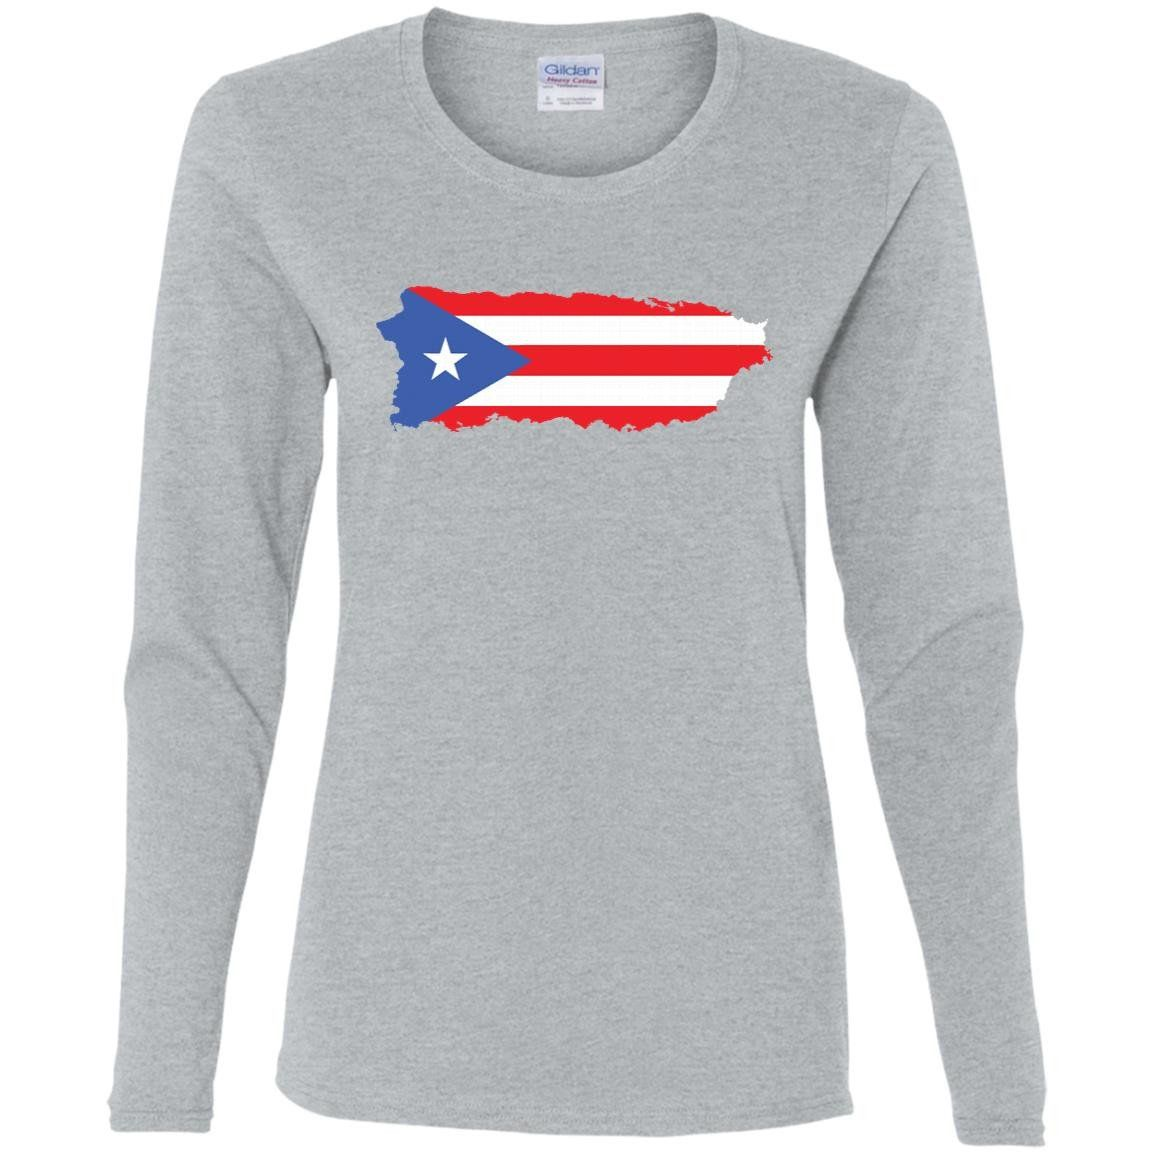 Puerto Rico flag-01 G540L Gildan Ladies' Cotton LS T-Shirt